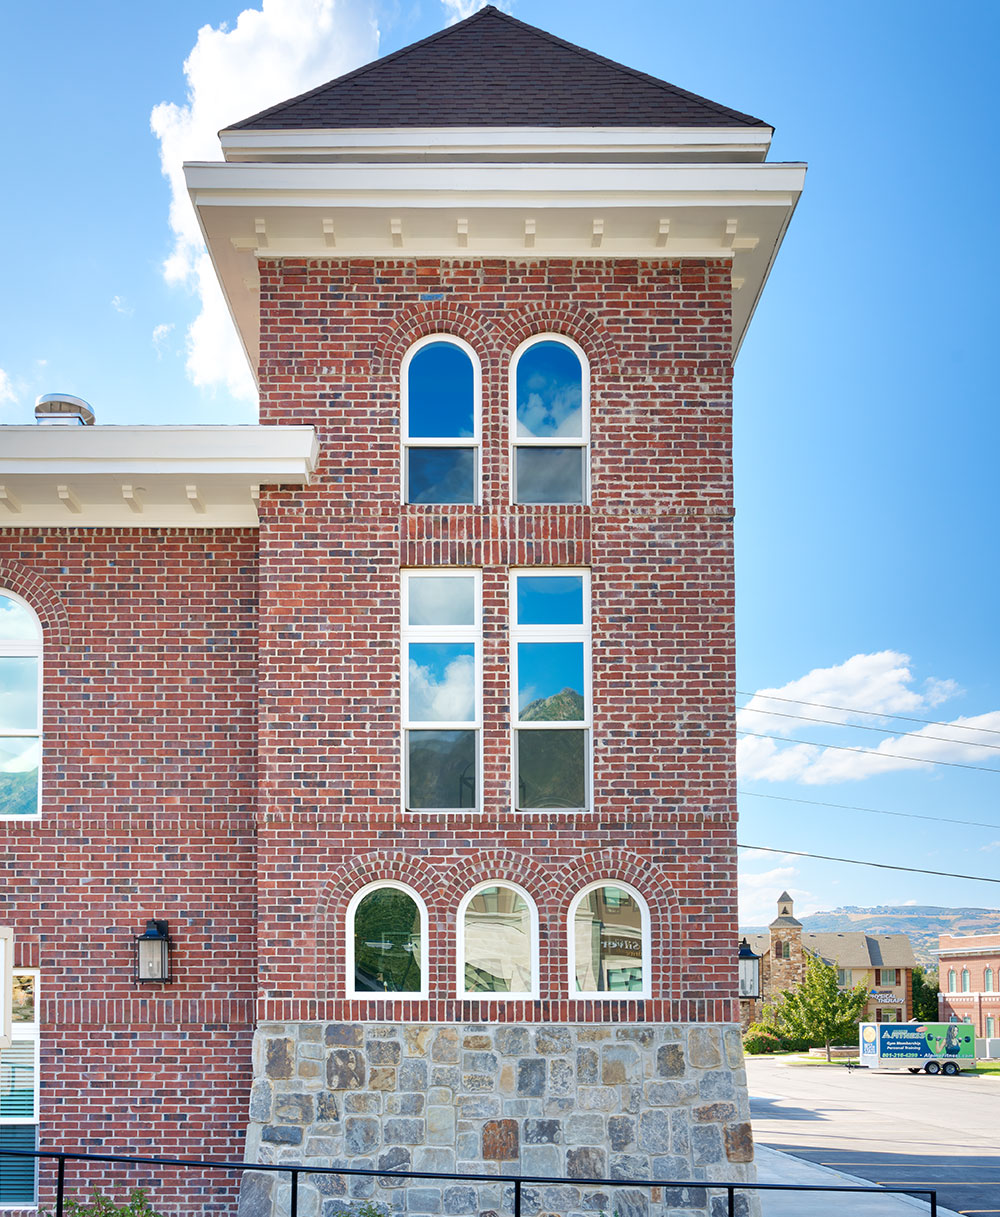 historic-architecture-utah-brick-stone-alpine